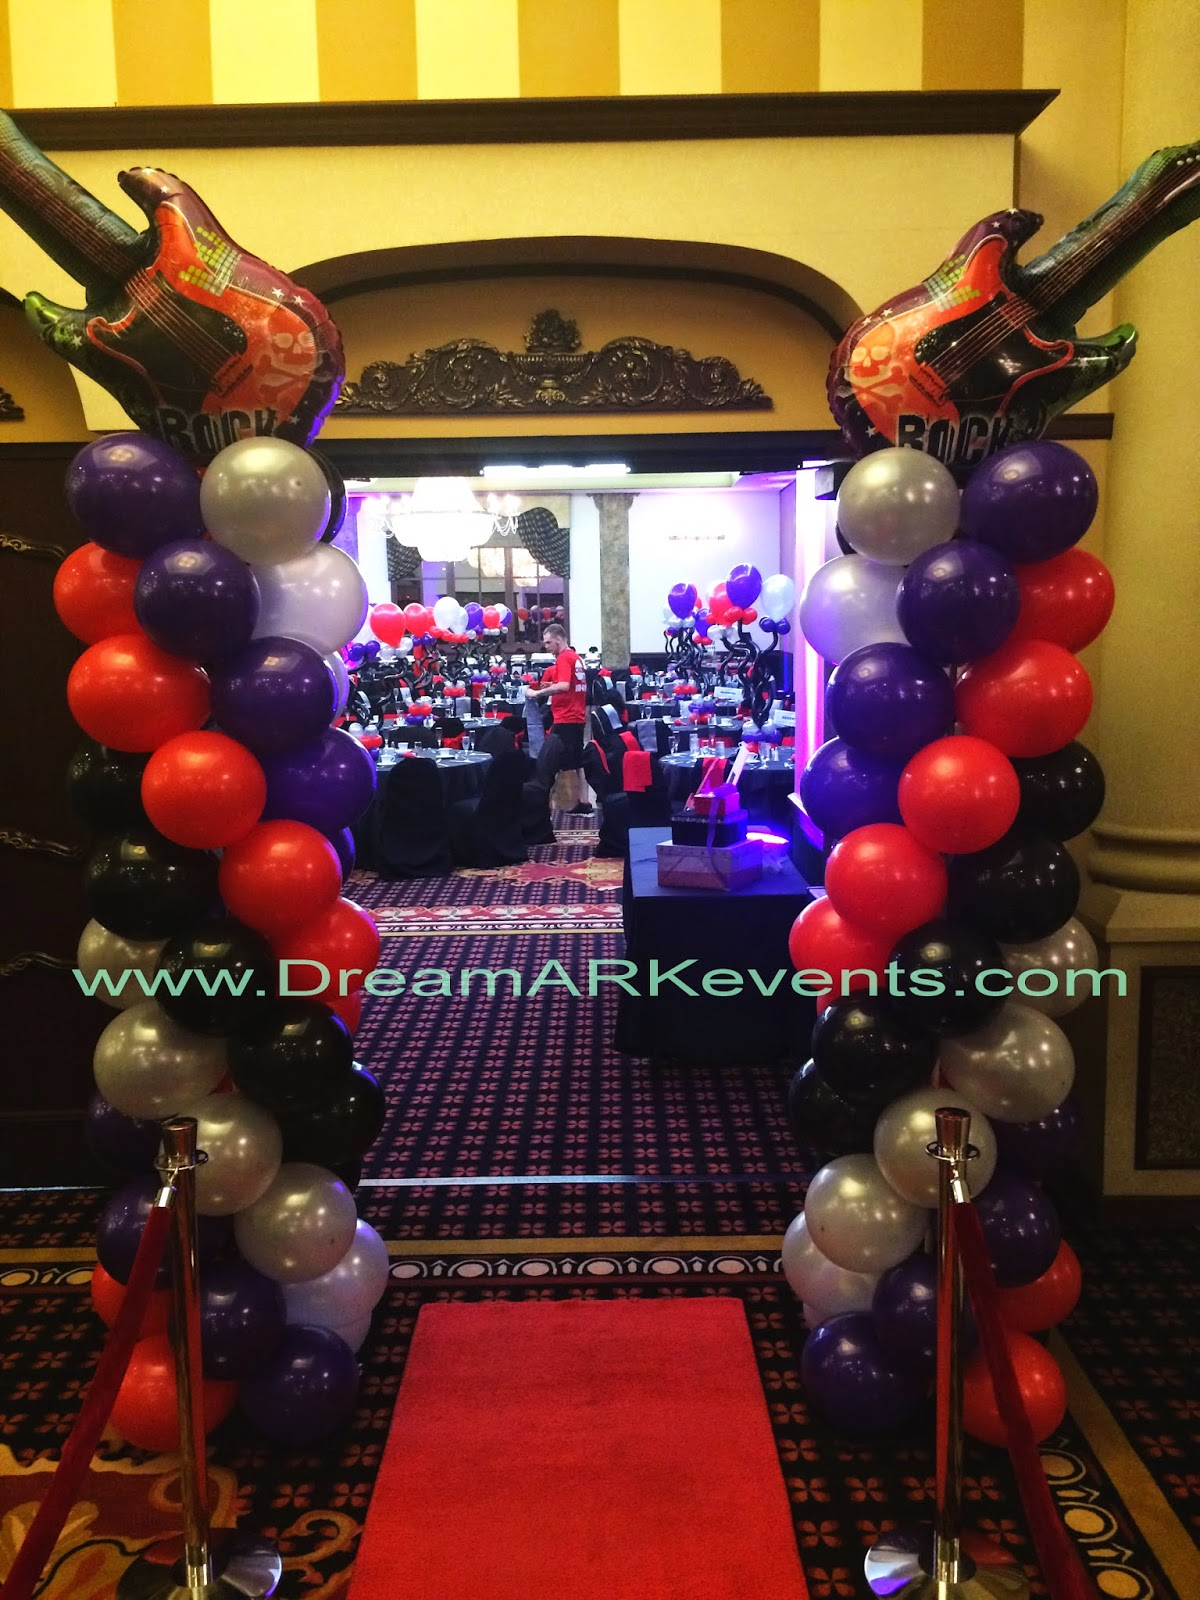 Balloon column, party decoration with balloons